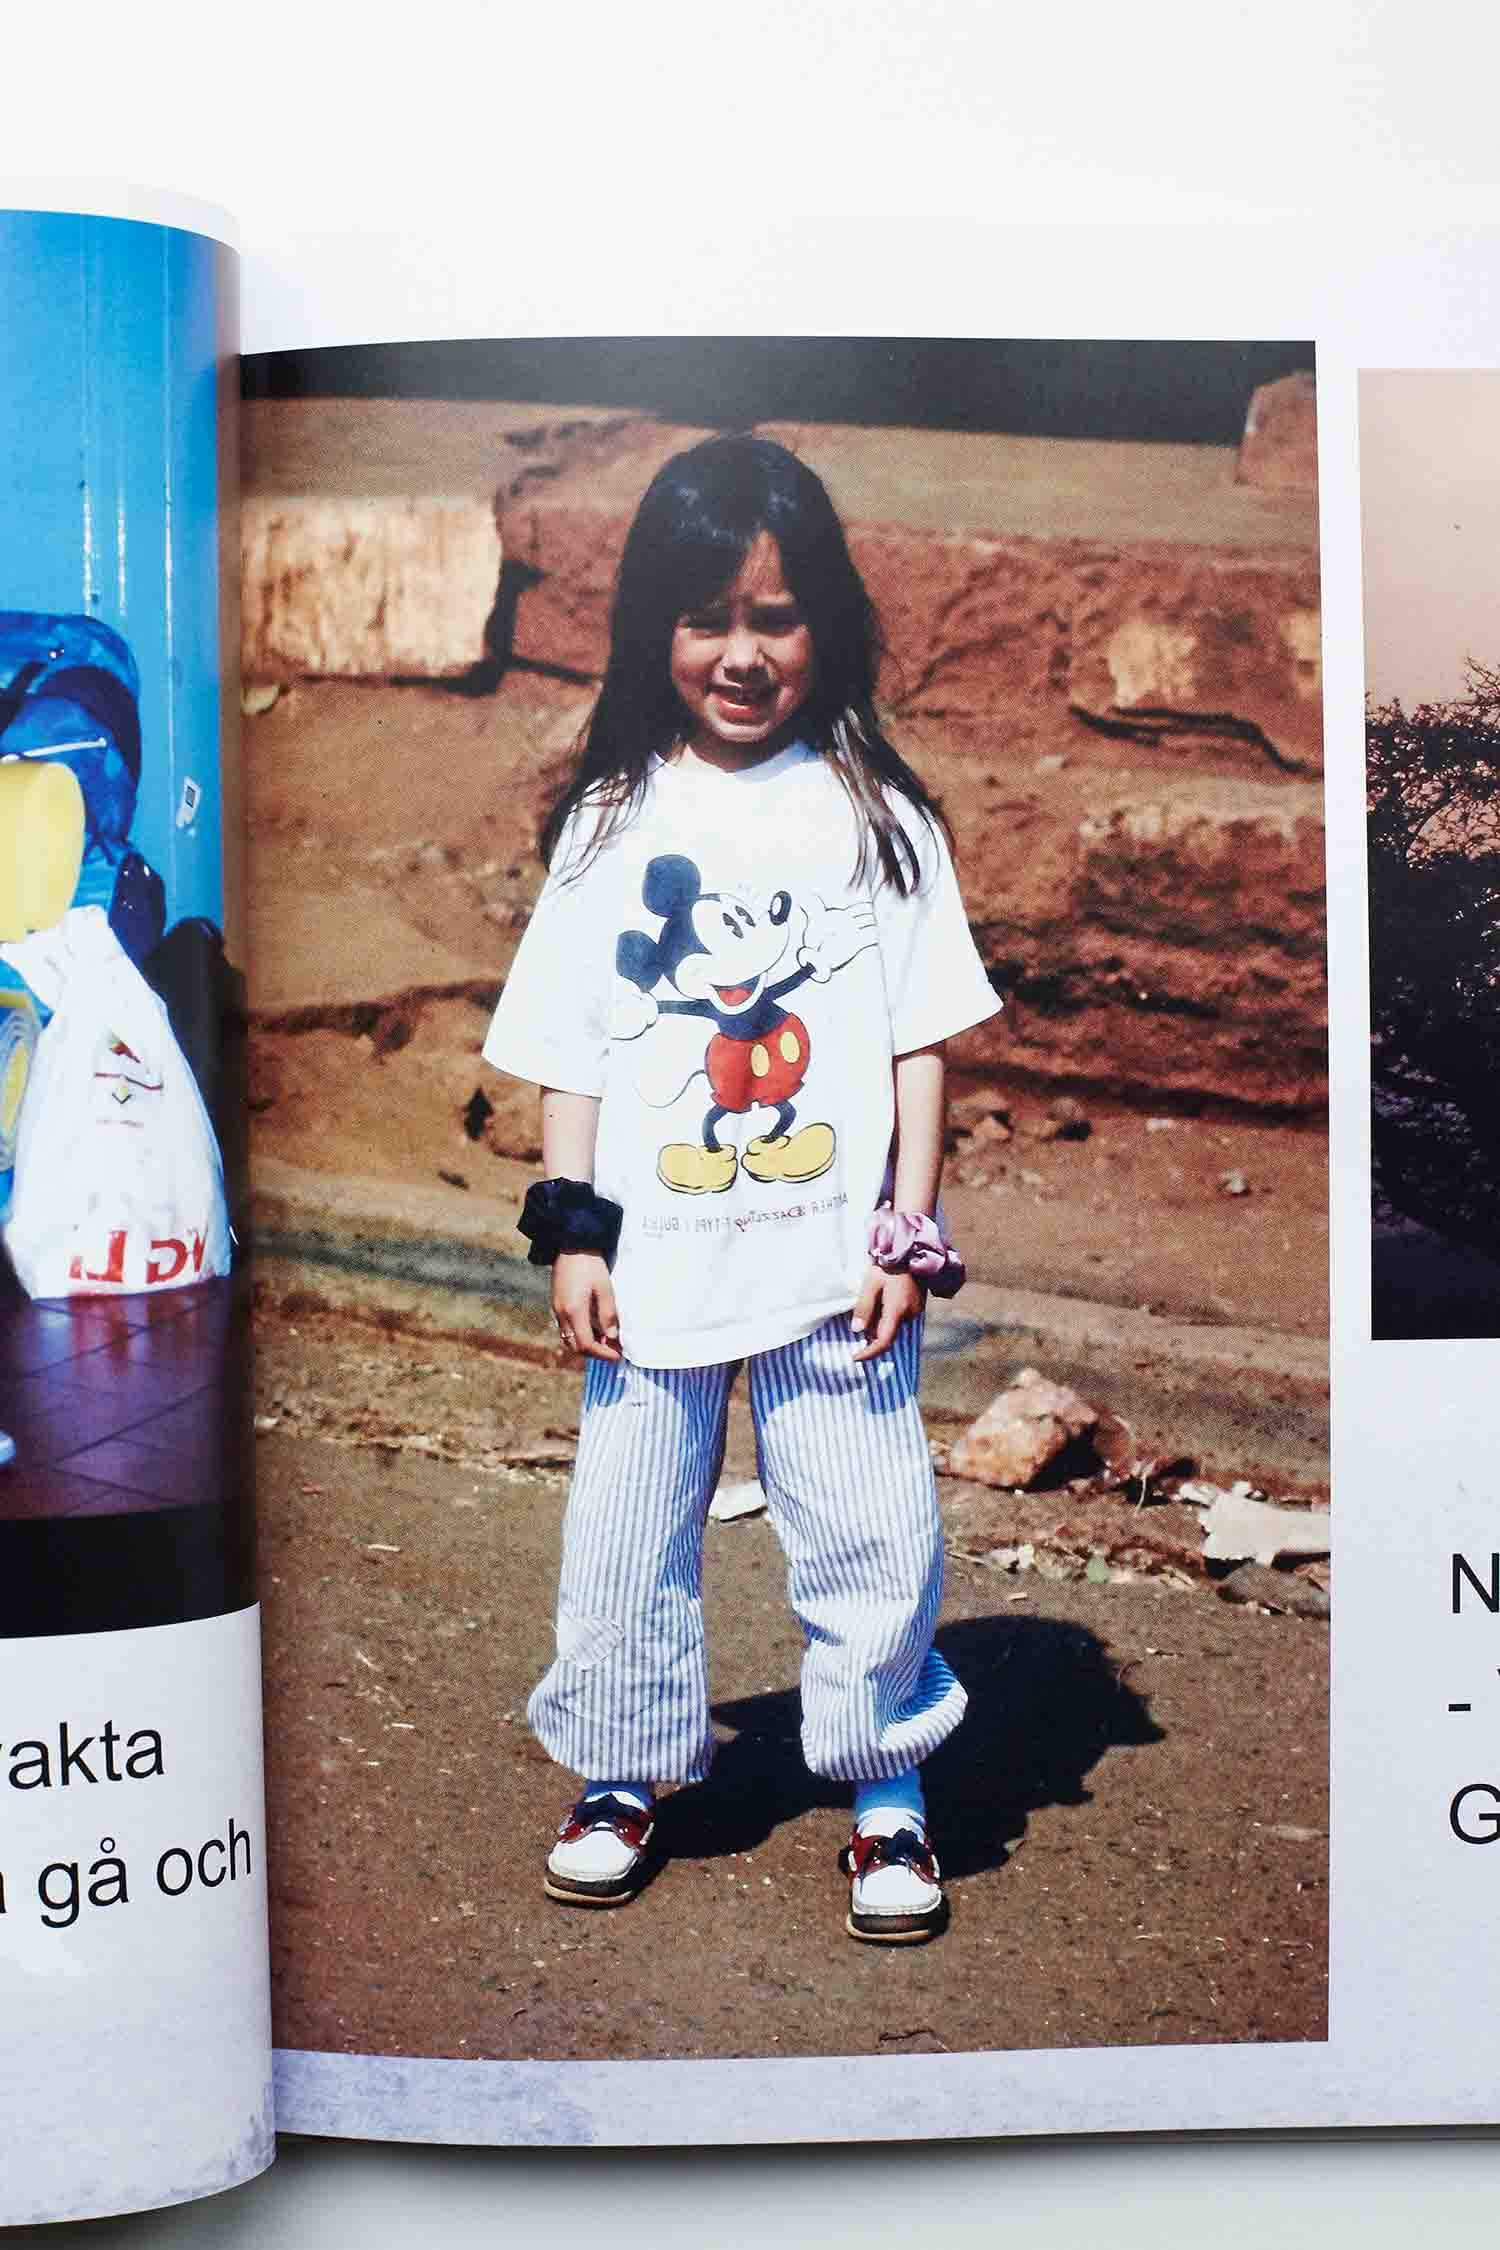 pepe and nika interview with founder johanna topooco from wawa copenhagen organic kids clothes